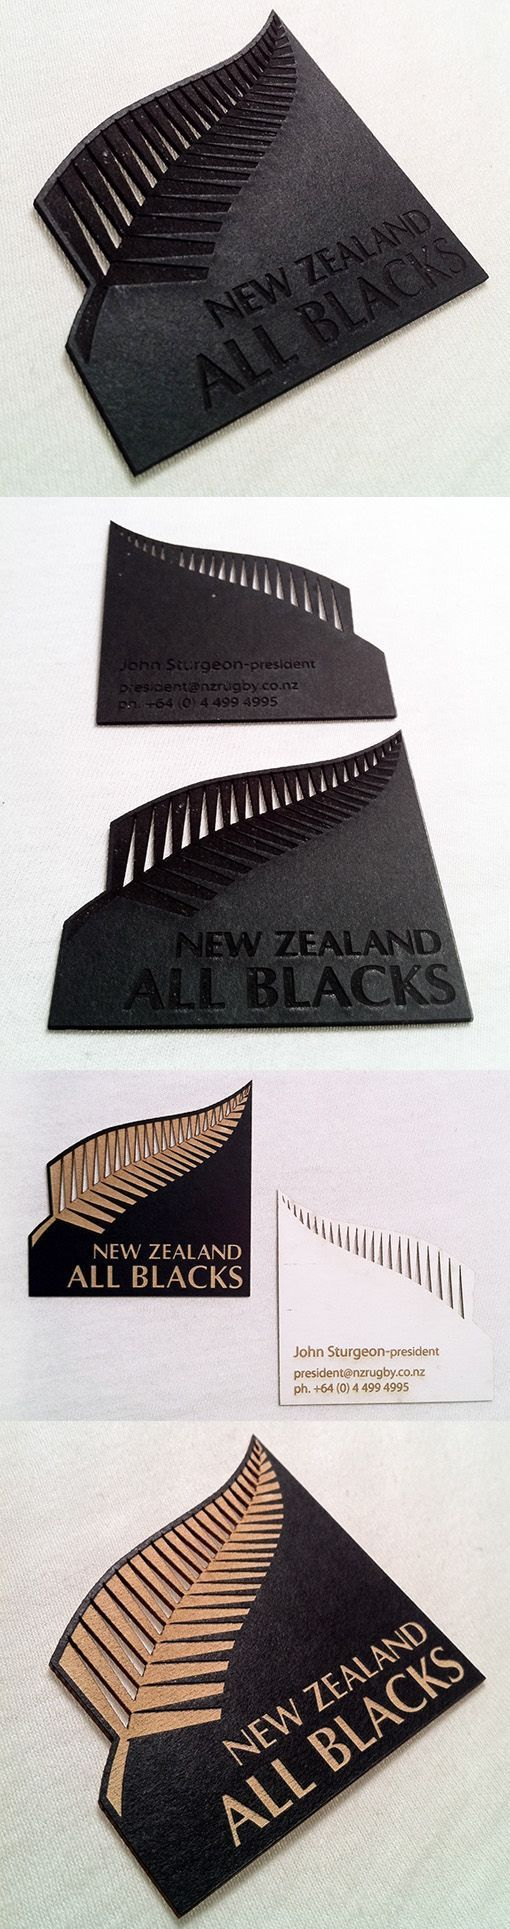 Stylish Laser Cut And Etched Black Business Card For A Rugby Team #UniqueBusinessCards #businesscardmaker